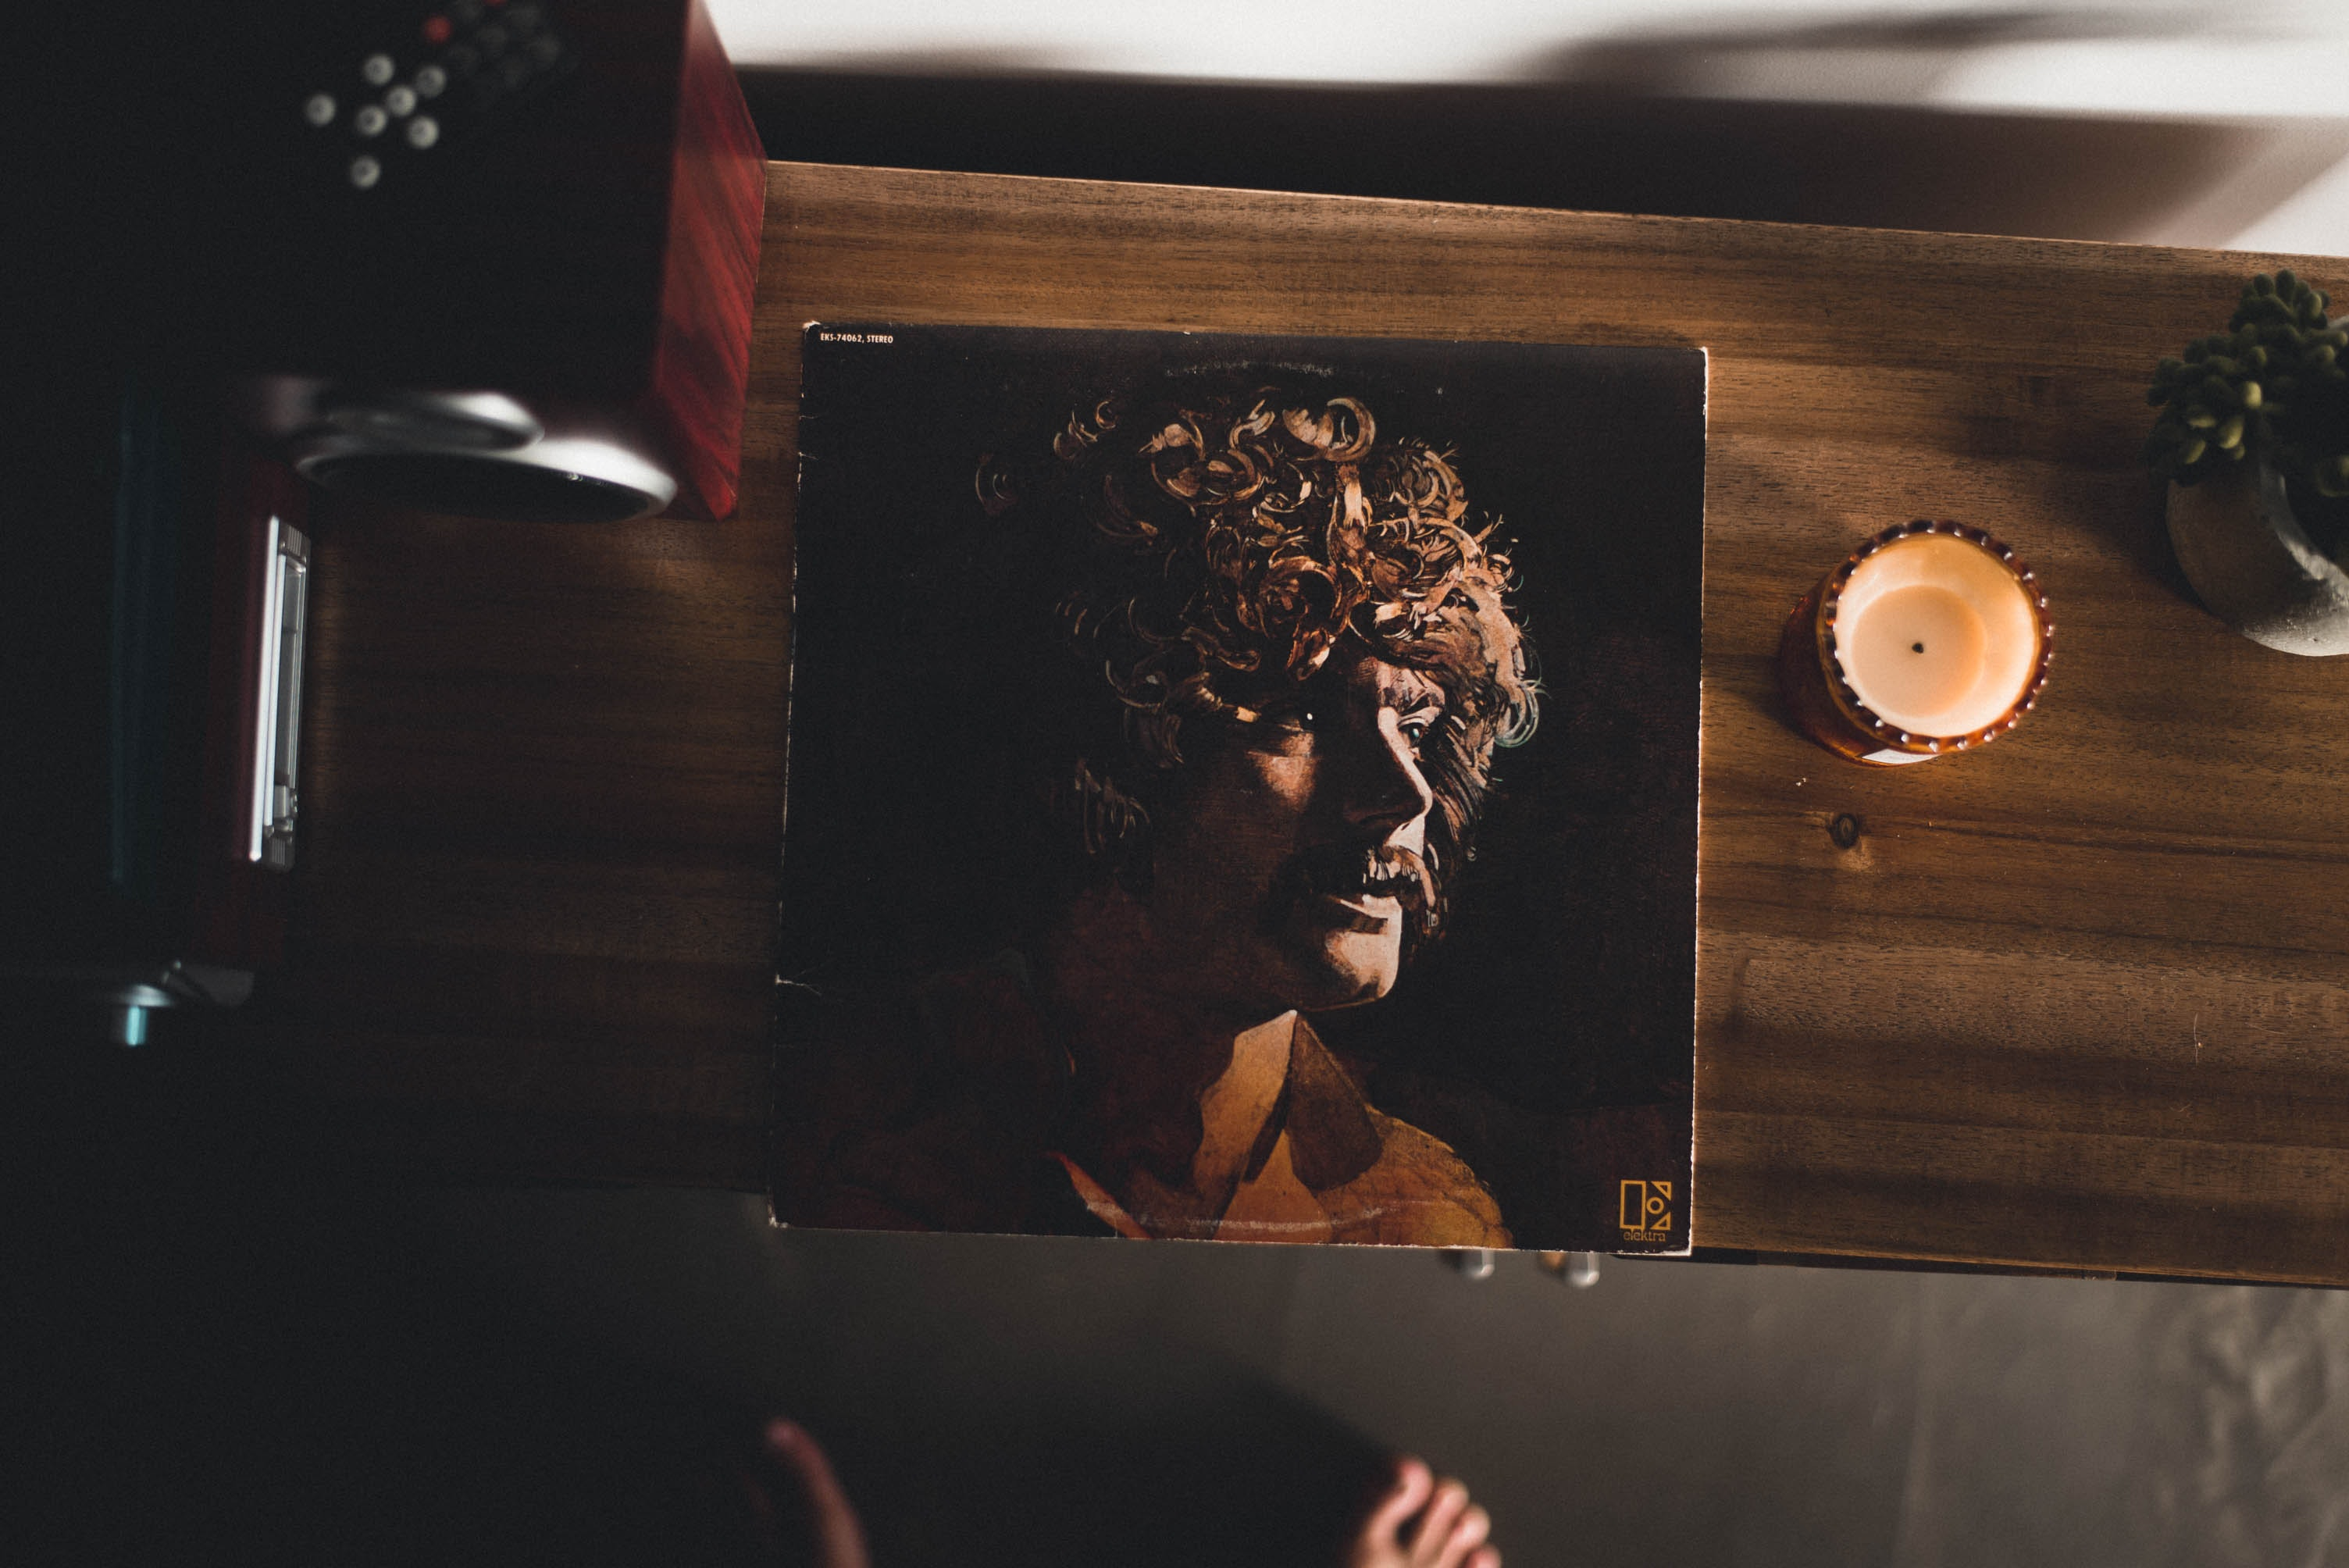 Man Wearing Brown Collared Shirt Photo on Brown Wooden Cabinet, Adult, Man, Vinyl, Table, HQ Photo